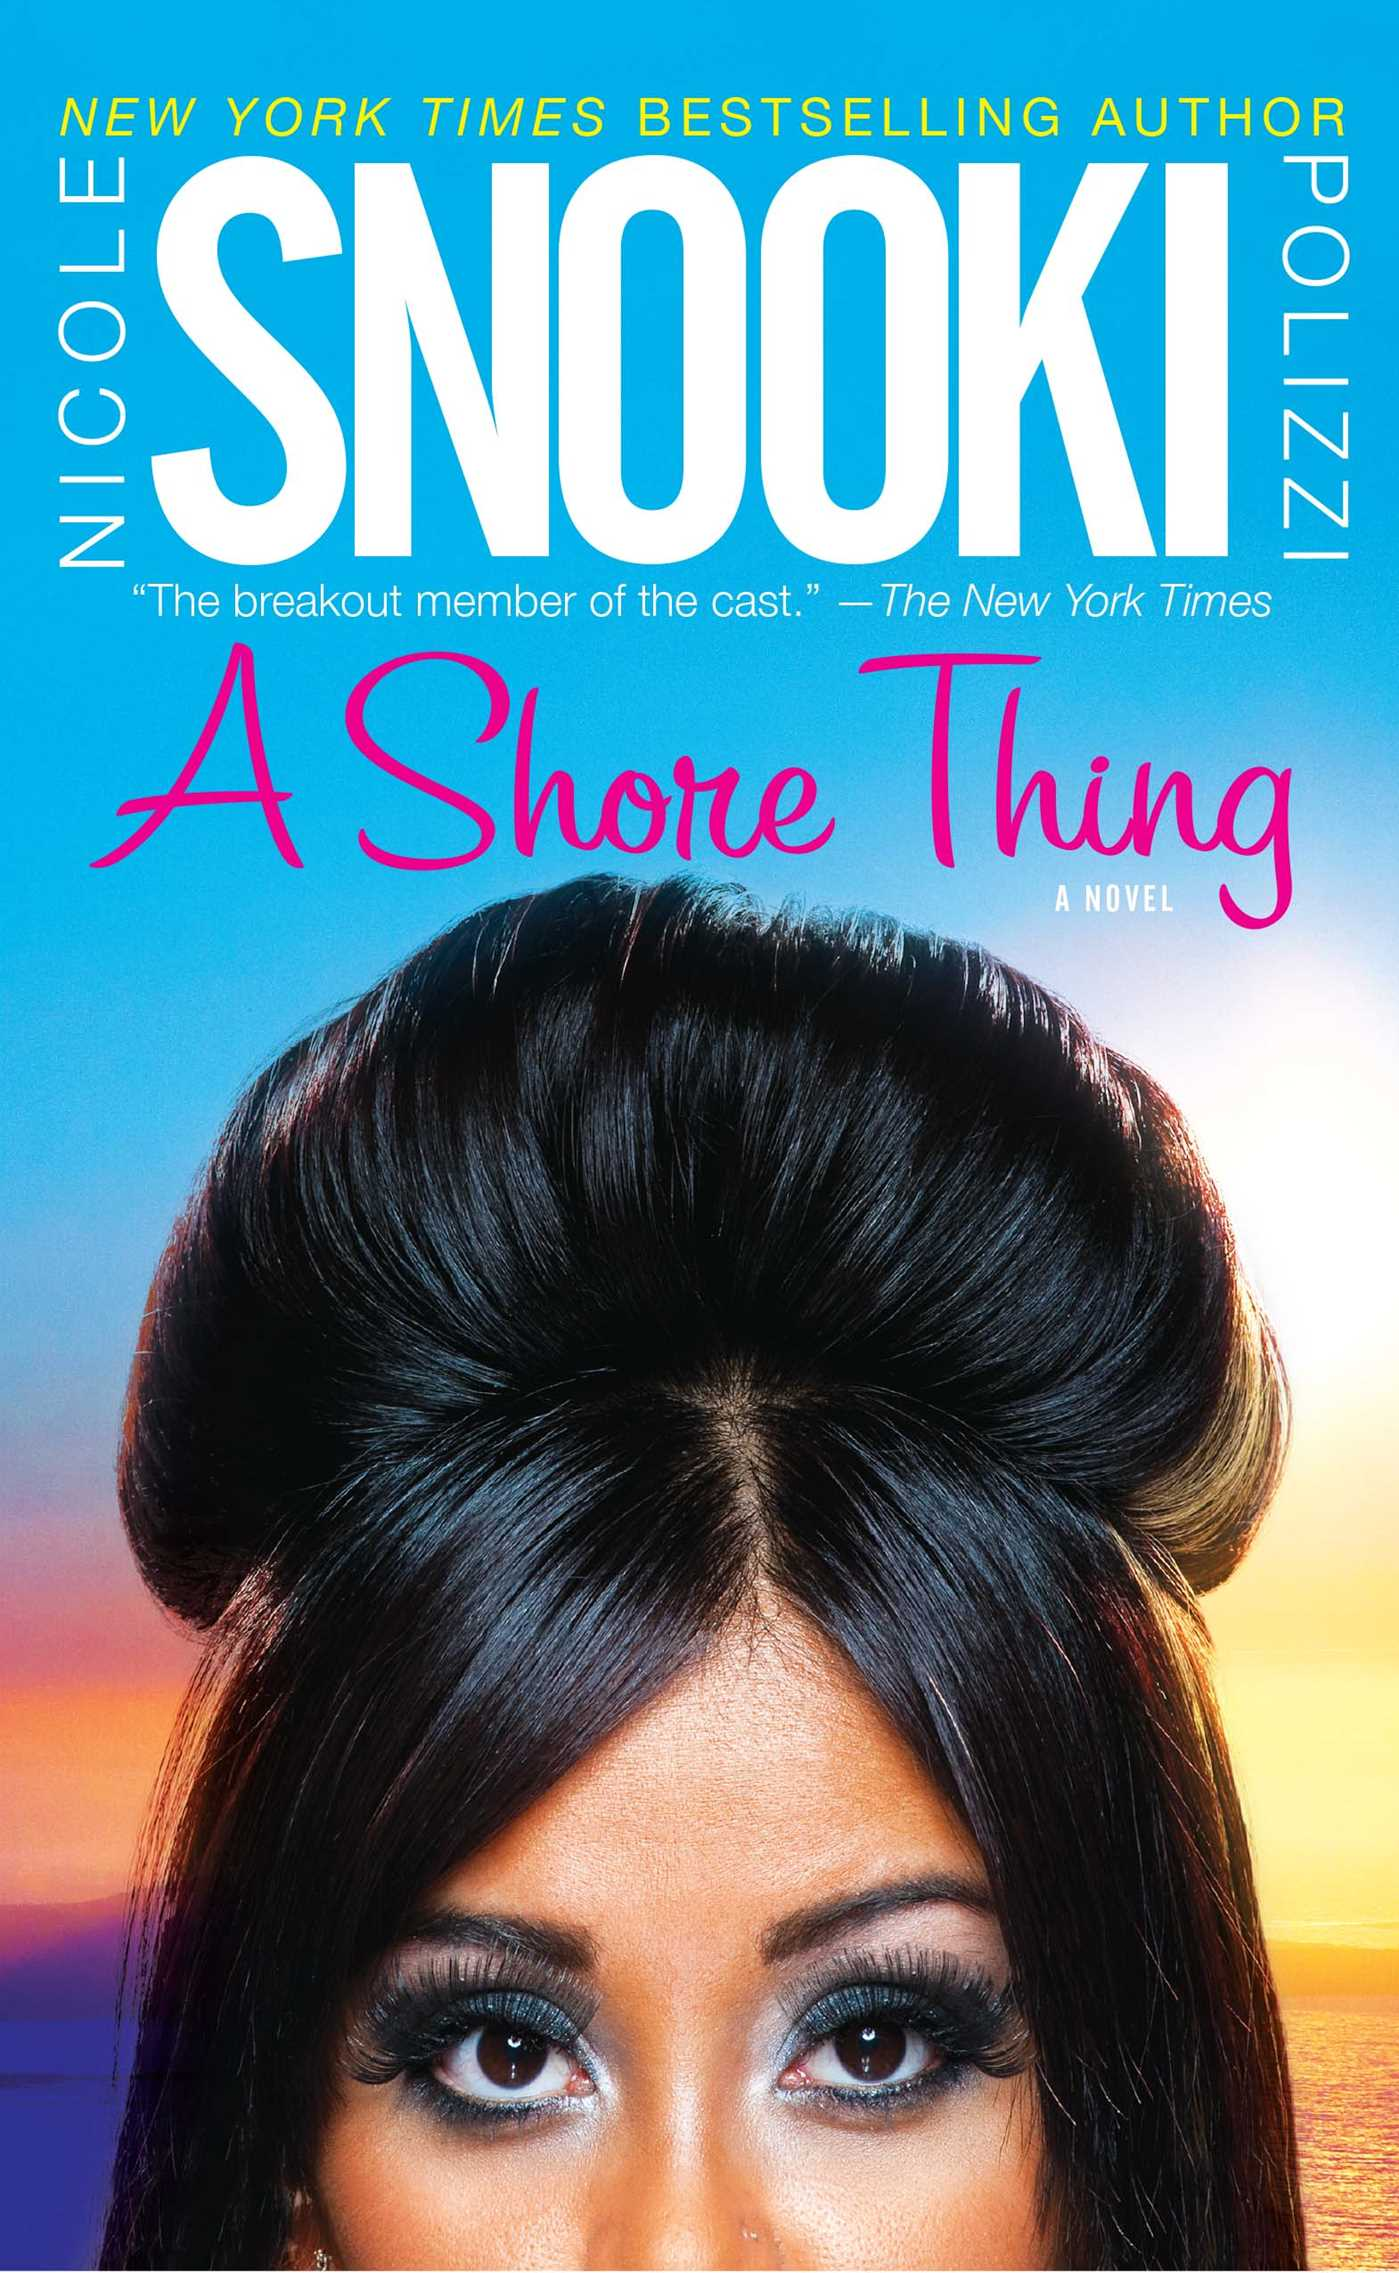 A-shore-thing-9781451623765_hr